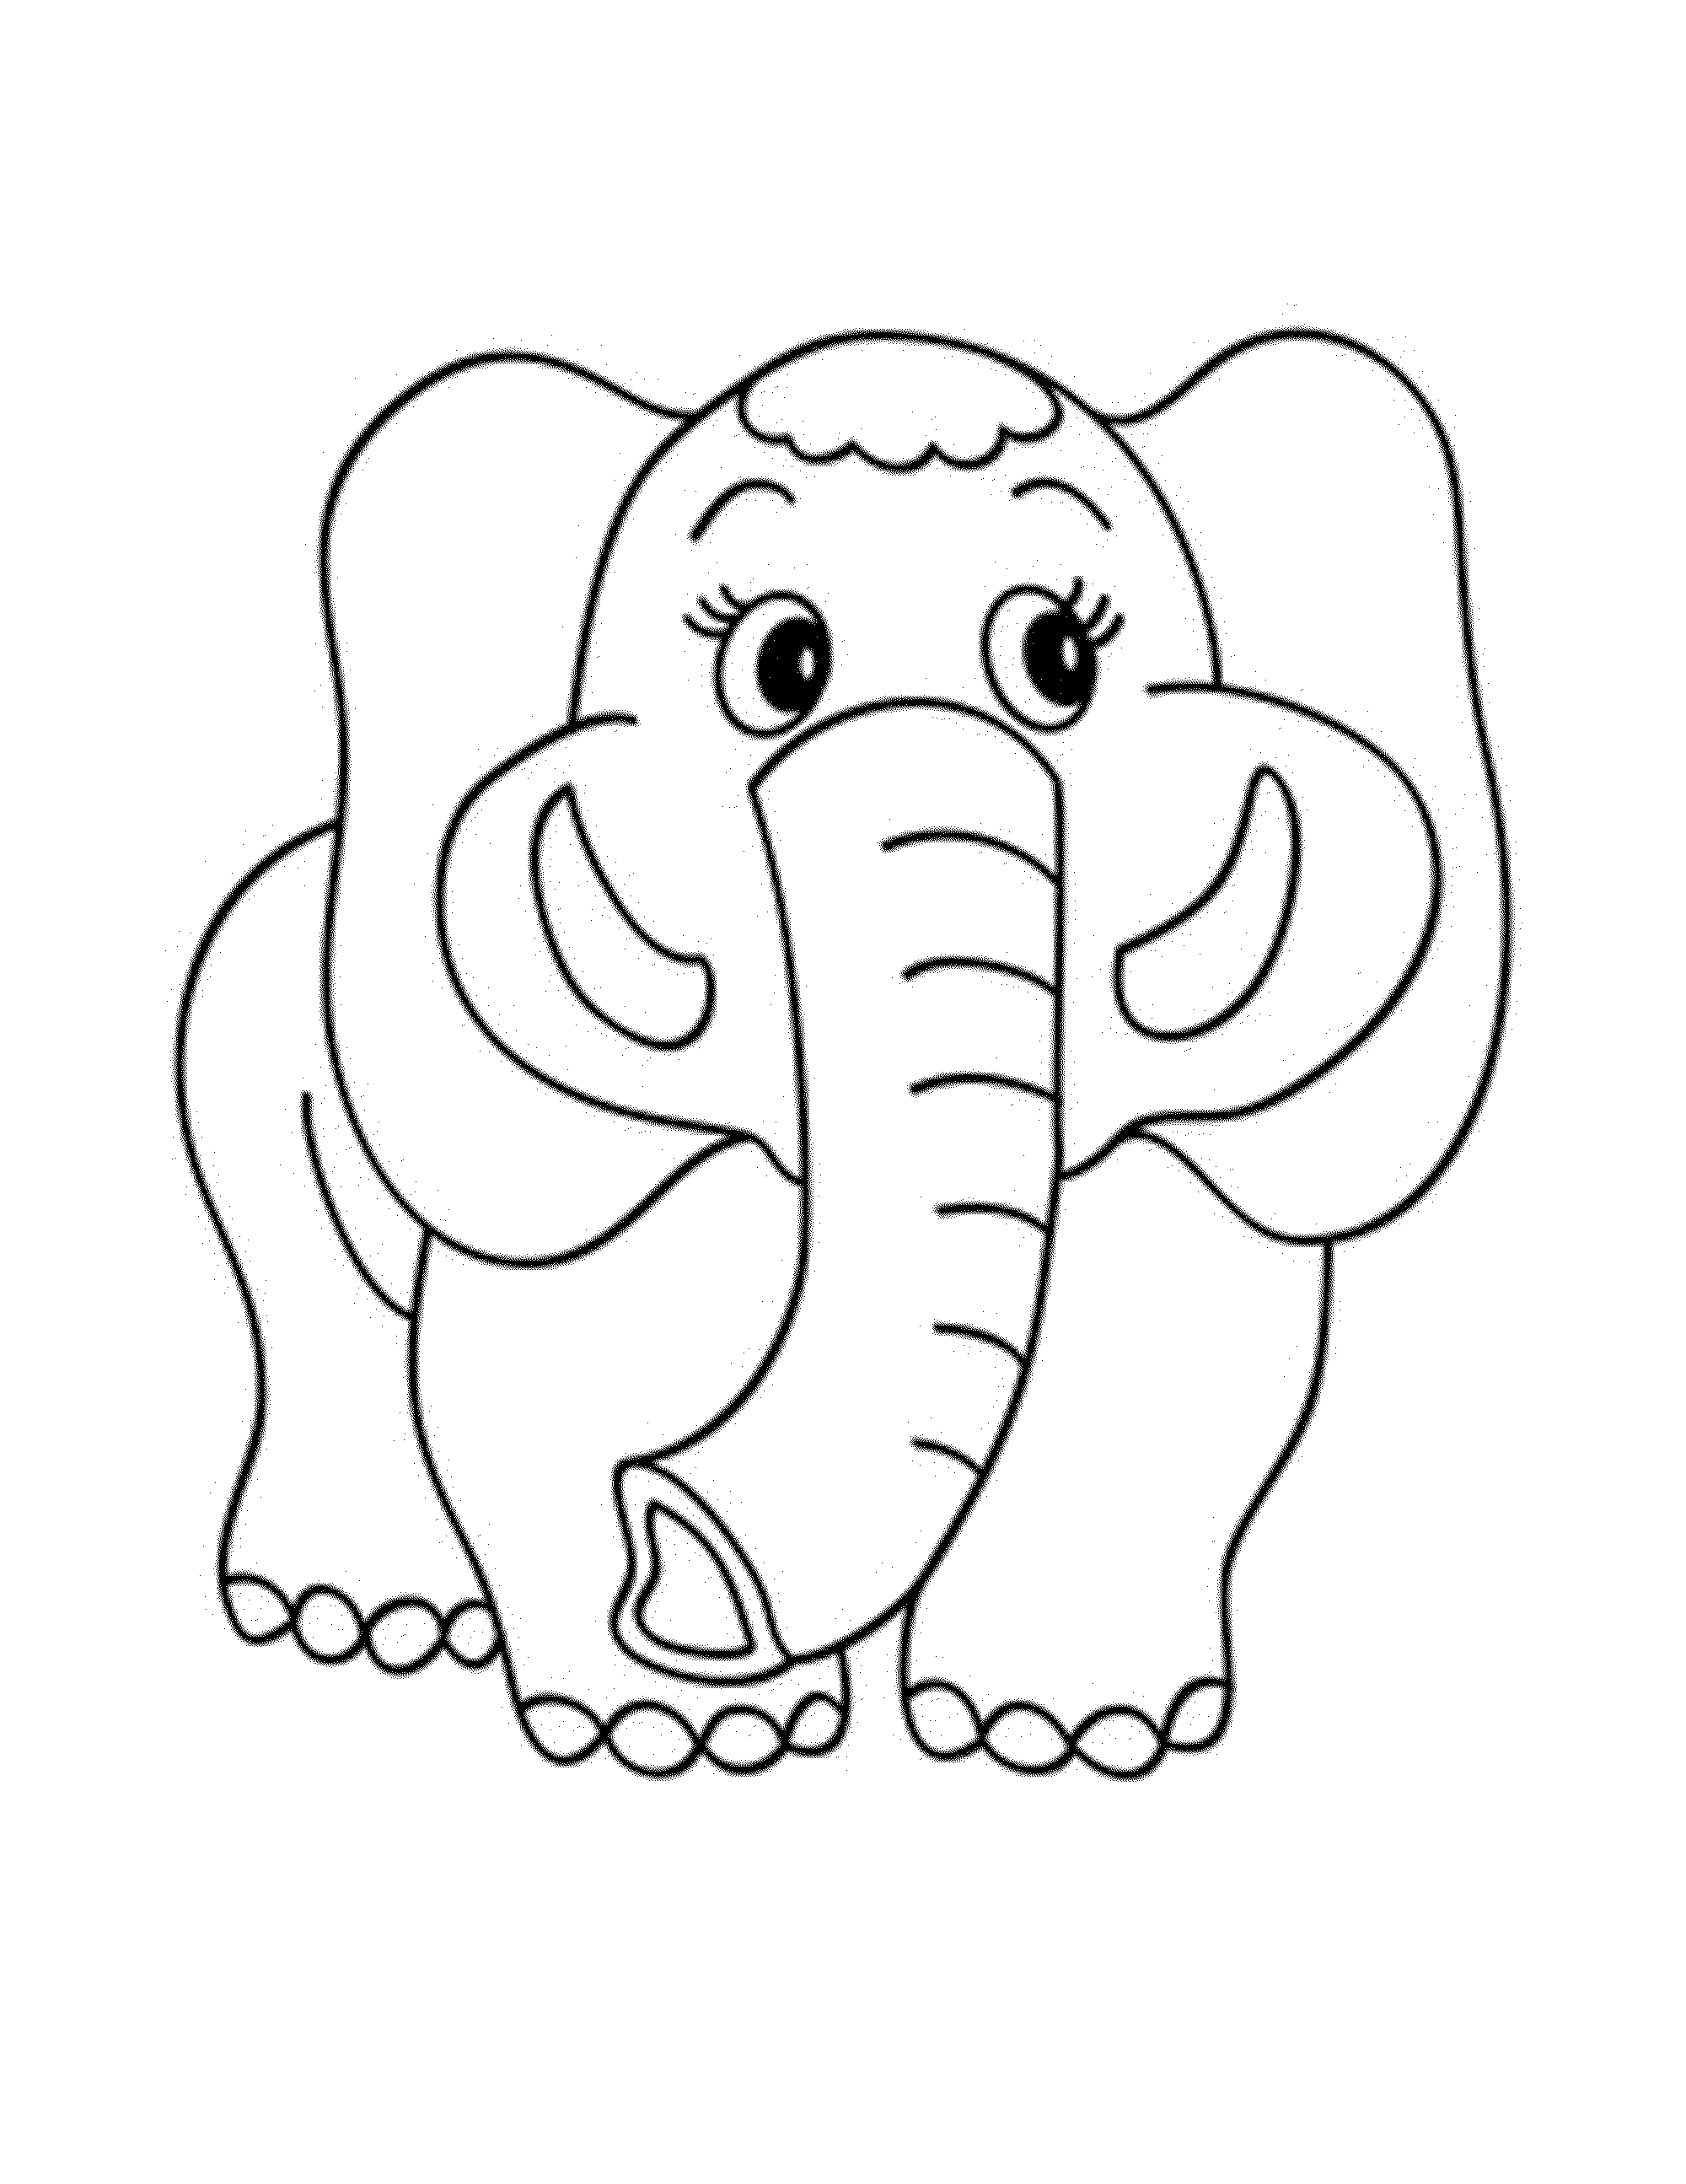 Free Elephant Coloring Pages for Adults - Easy Peasy and Fun | 2590x2000